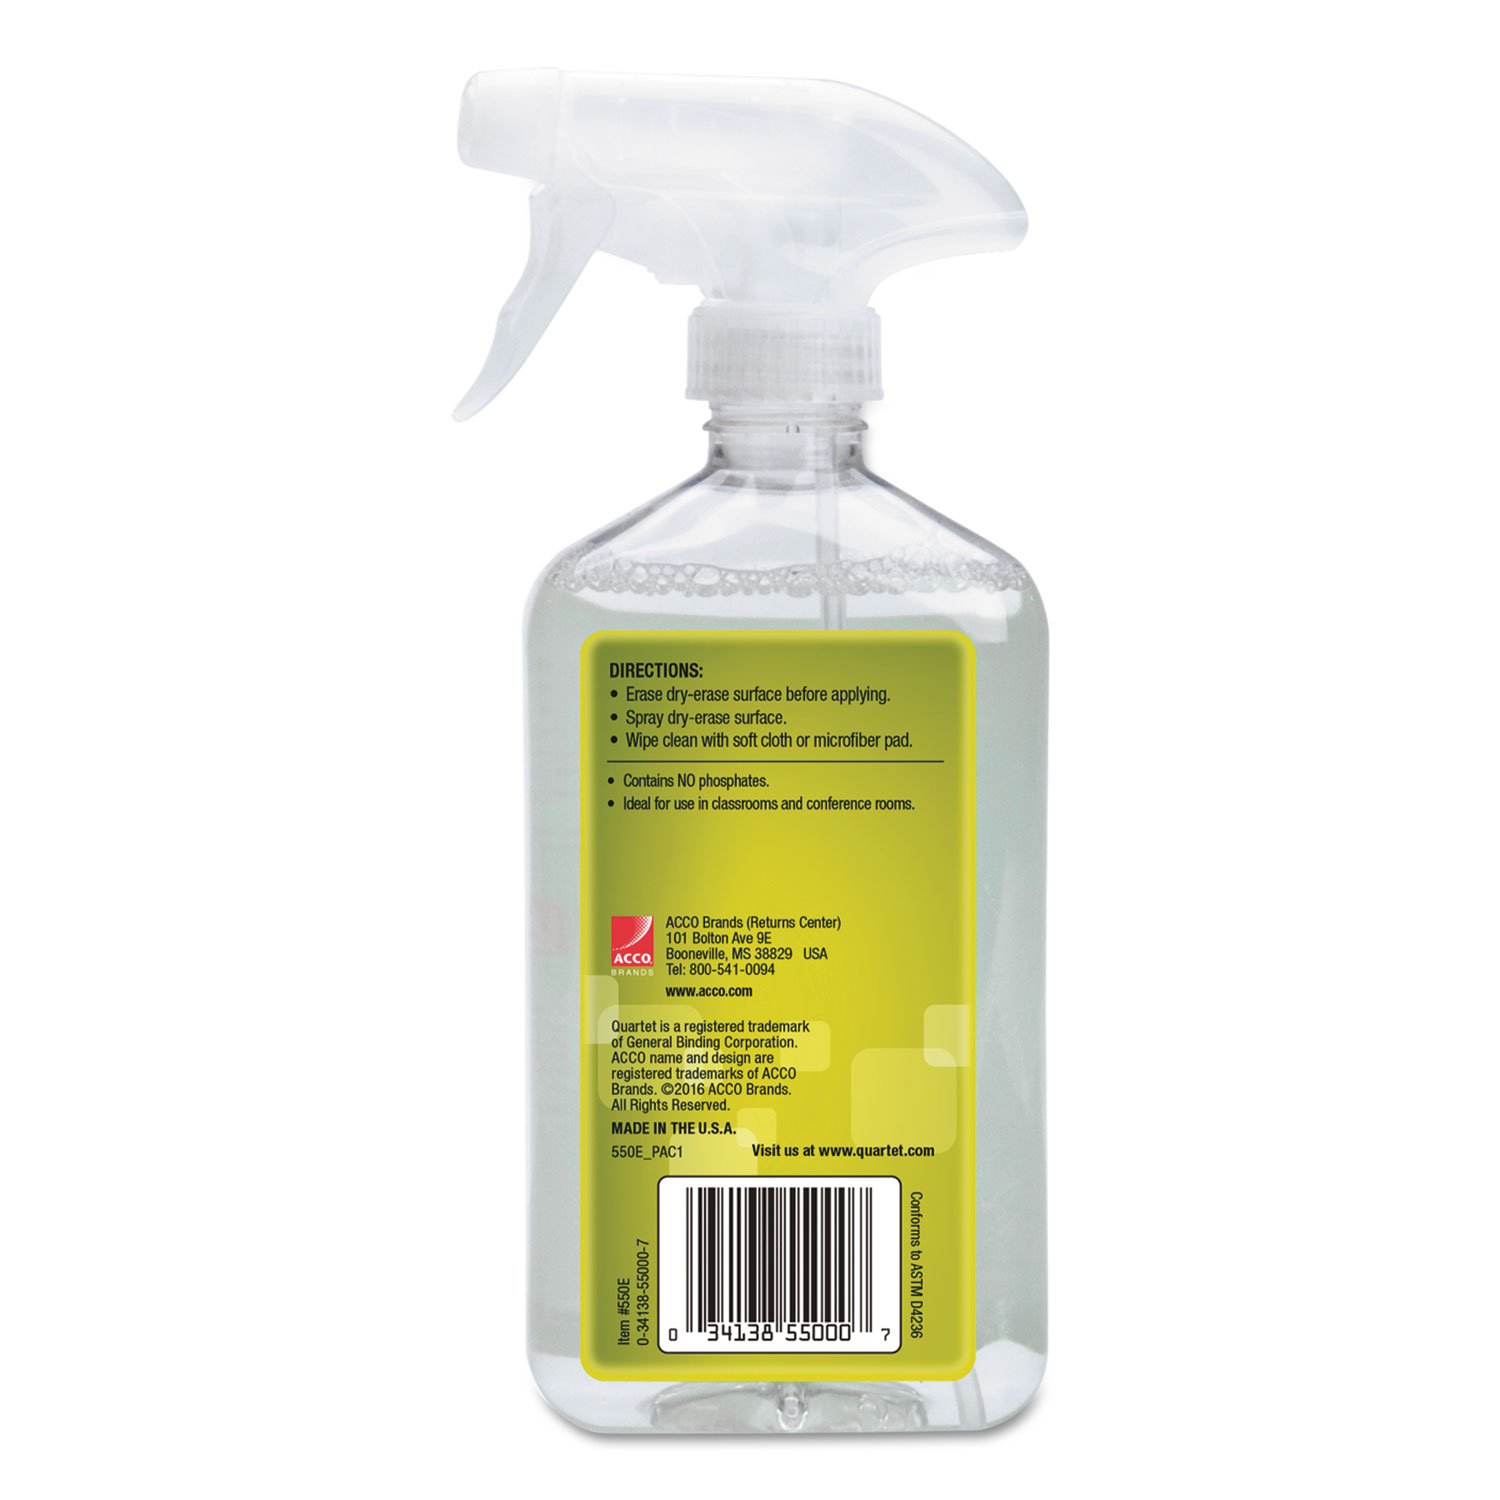 Picture of Whiteboard Spray Cleaner for Dry Erase Boards, 17 oz Spray Bottle